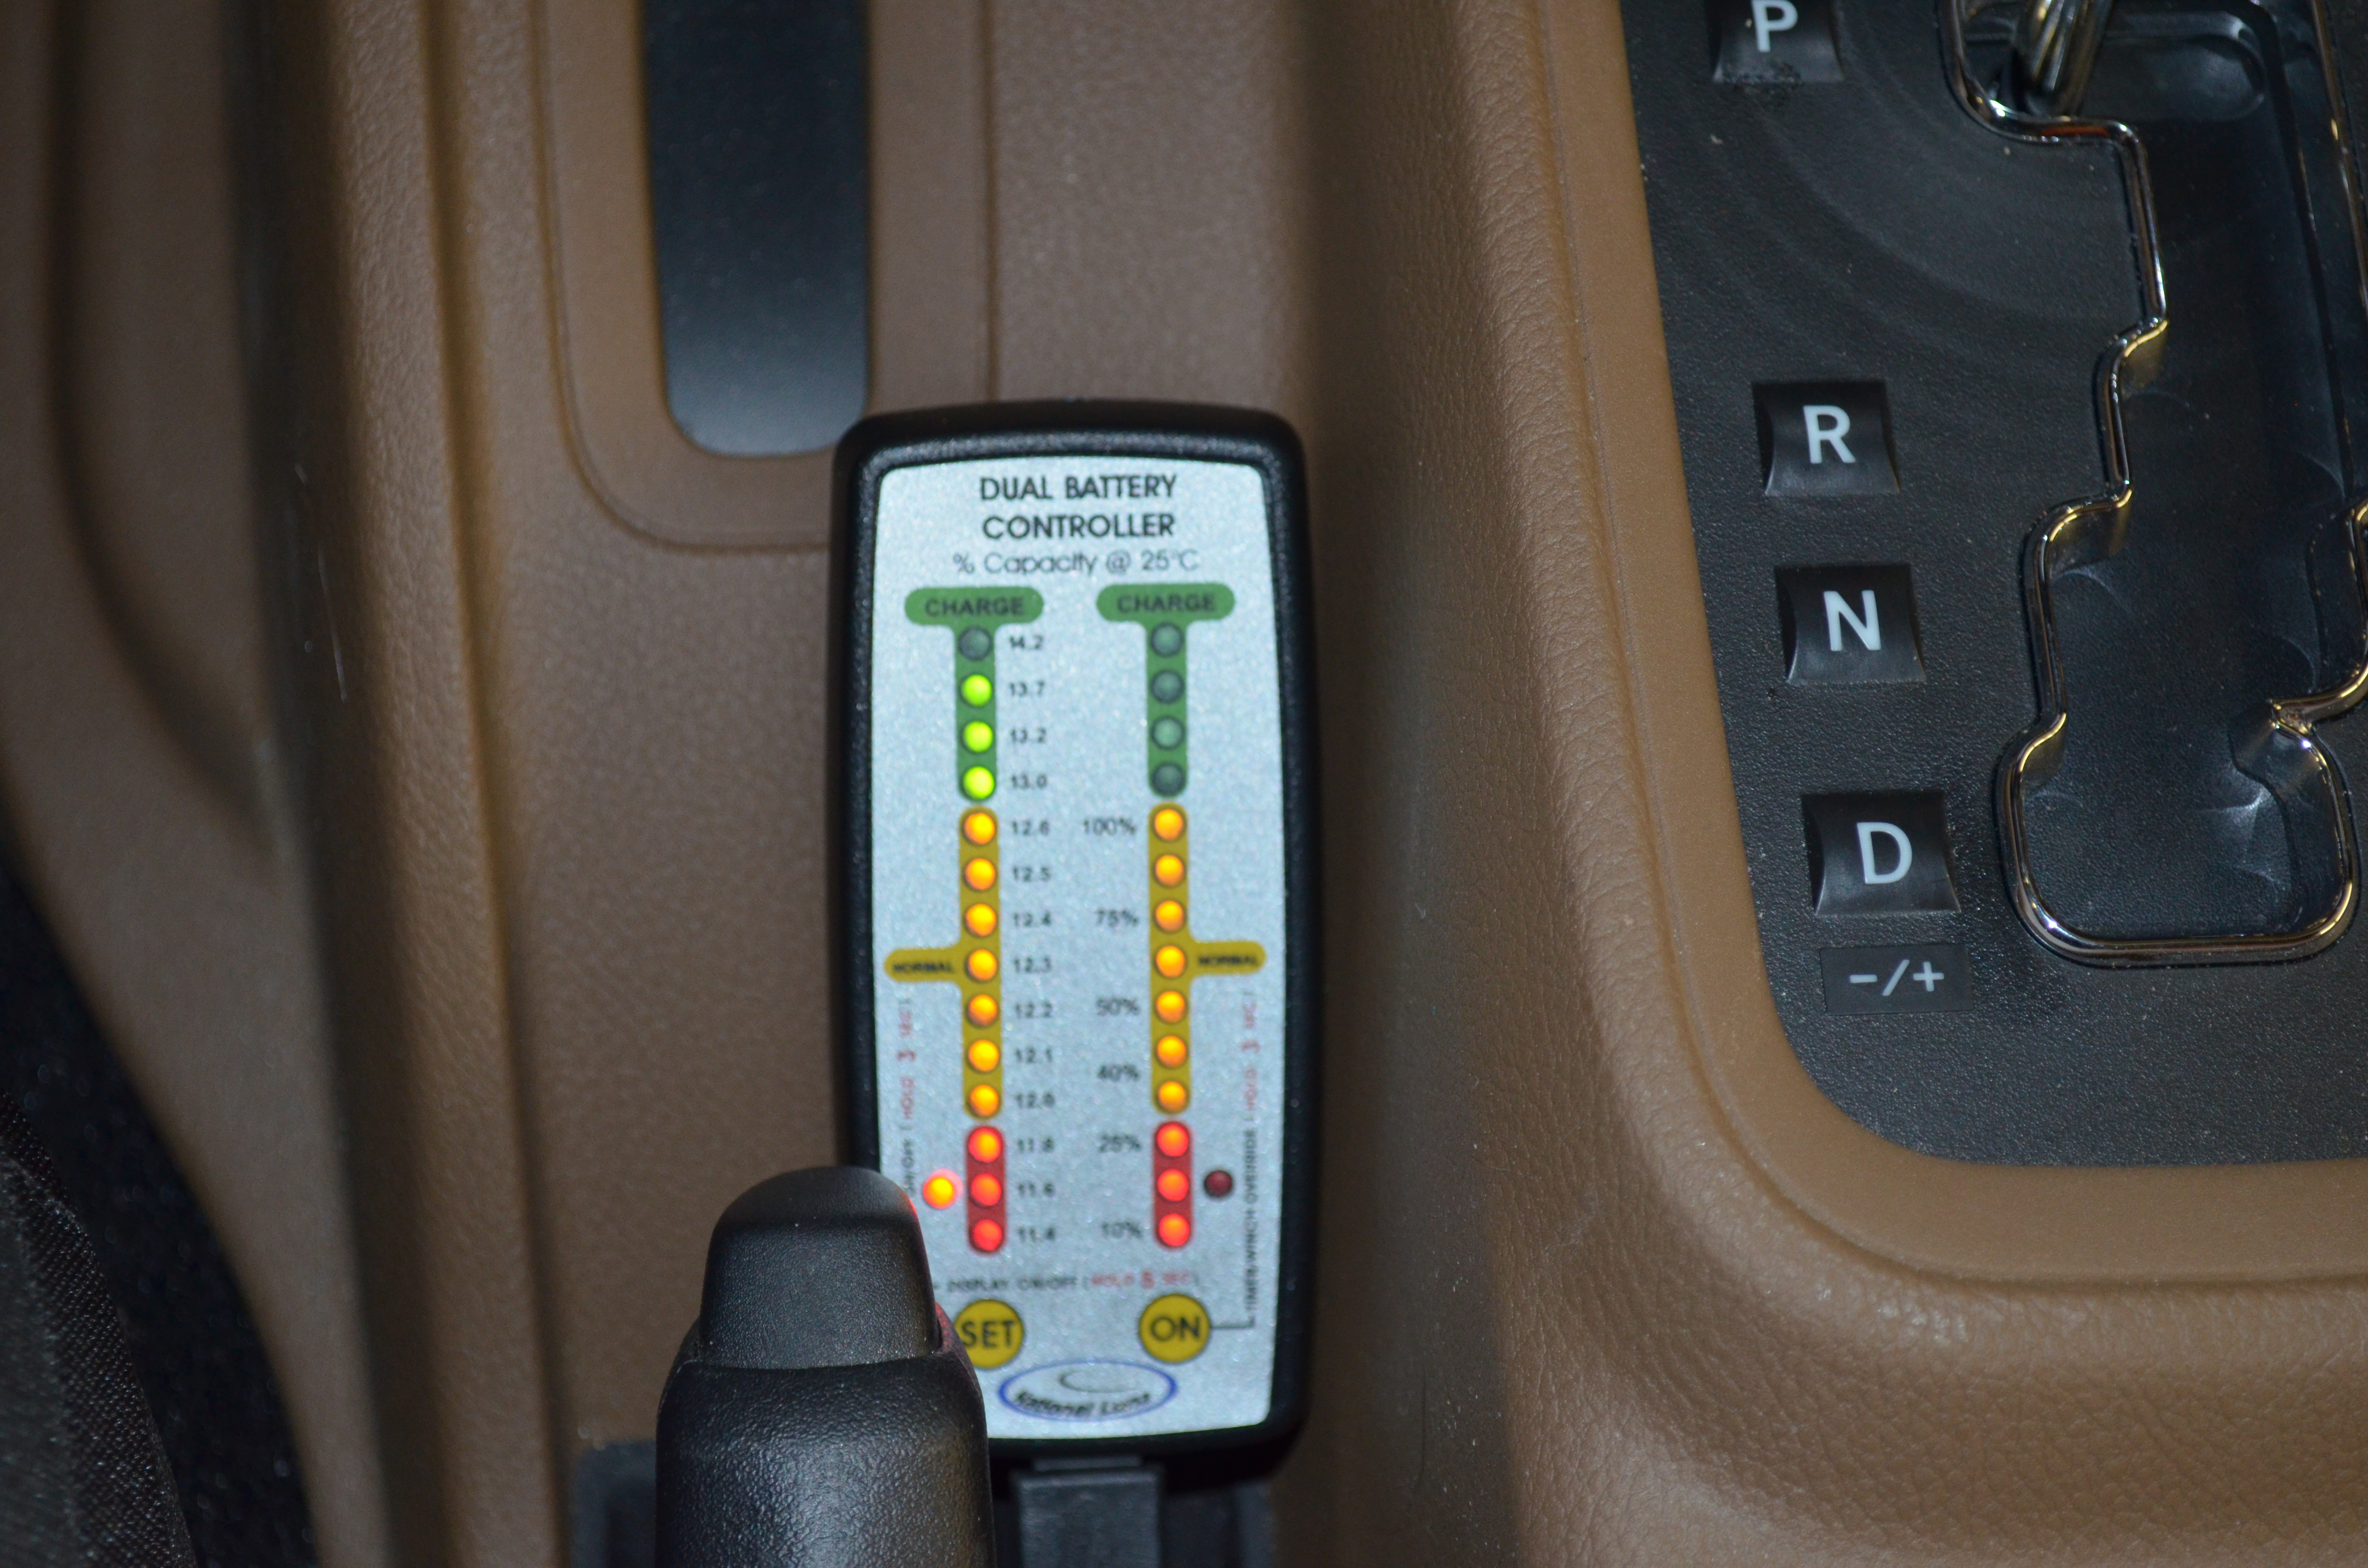 2012 wrangler jk dual battery upgrade jp k adventure magazine national luna dual battery controller